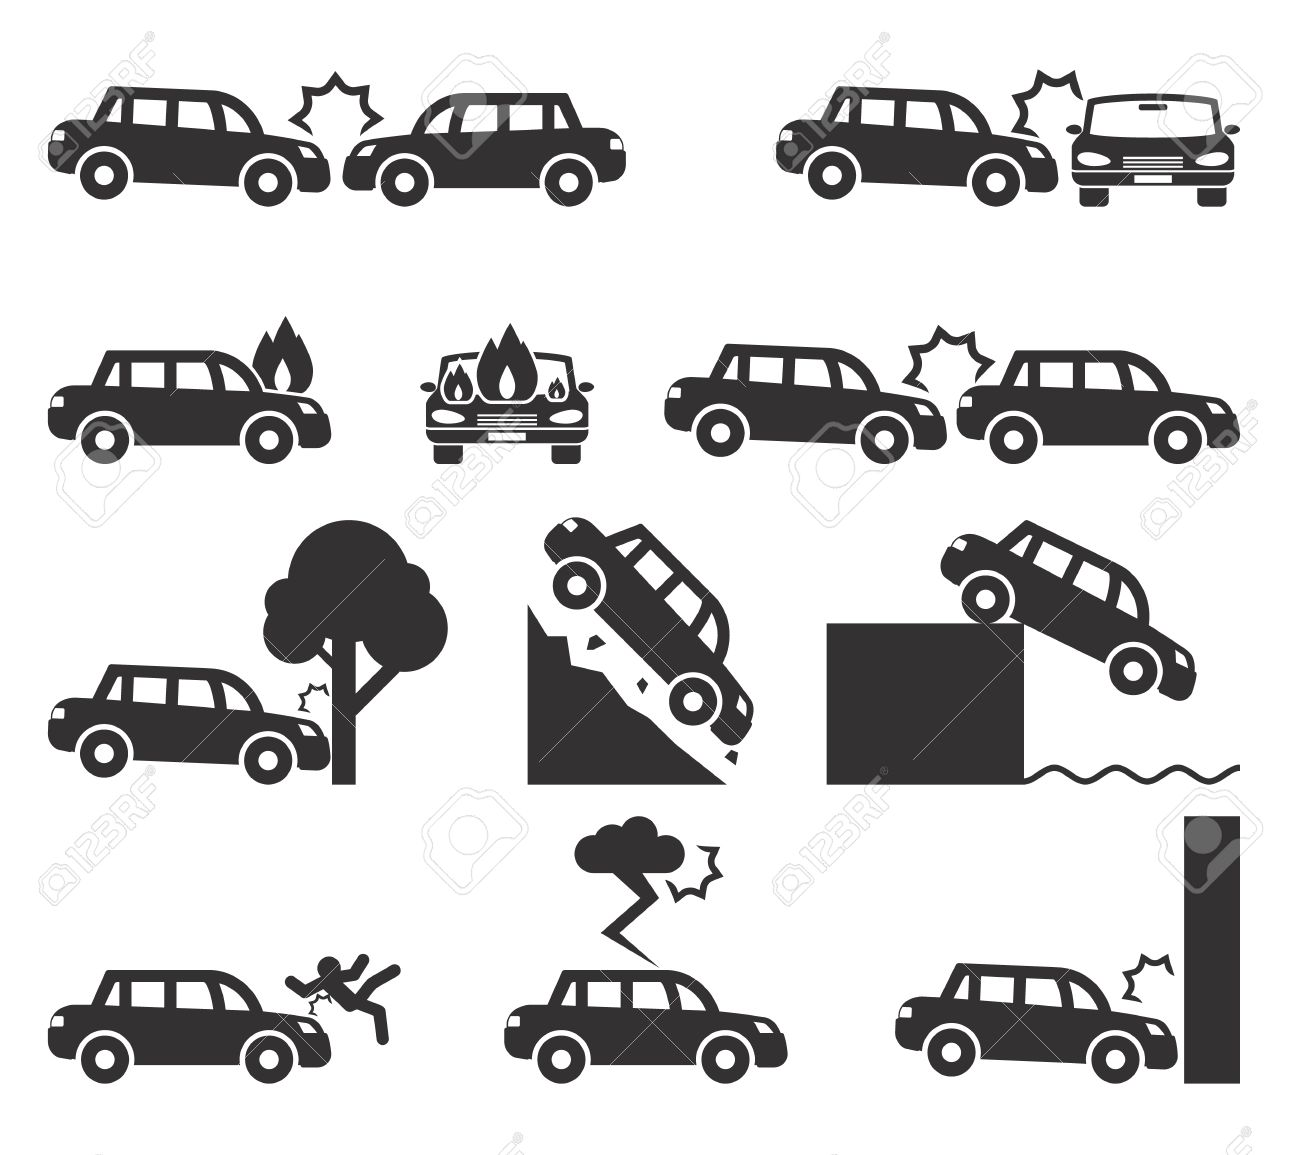 Car Crash And Accidents Icon Set Royalty Free Cliparts, Vectors, And ...